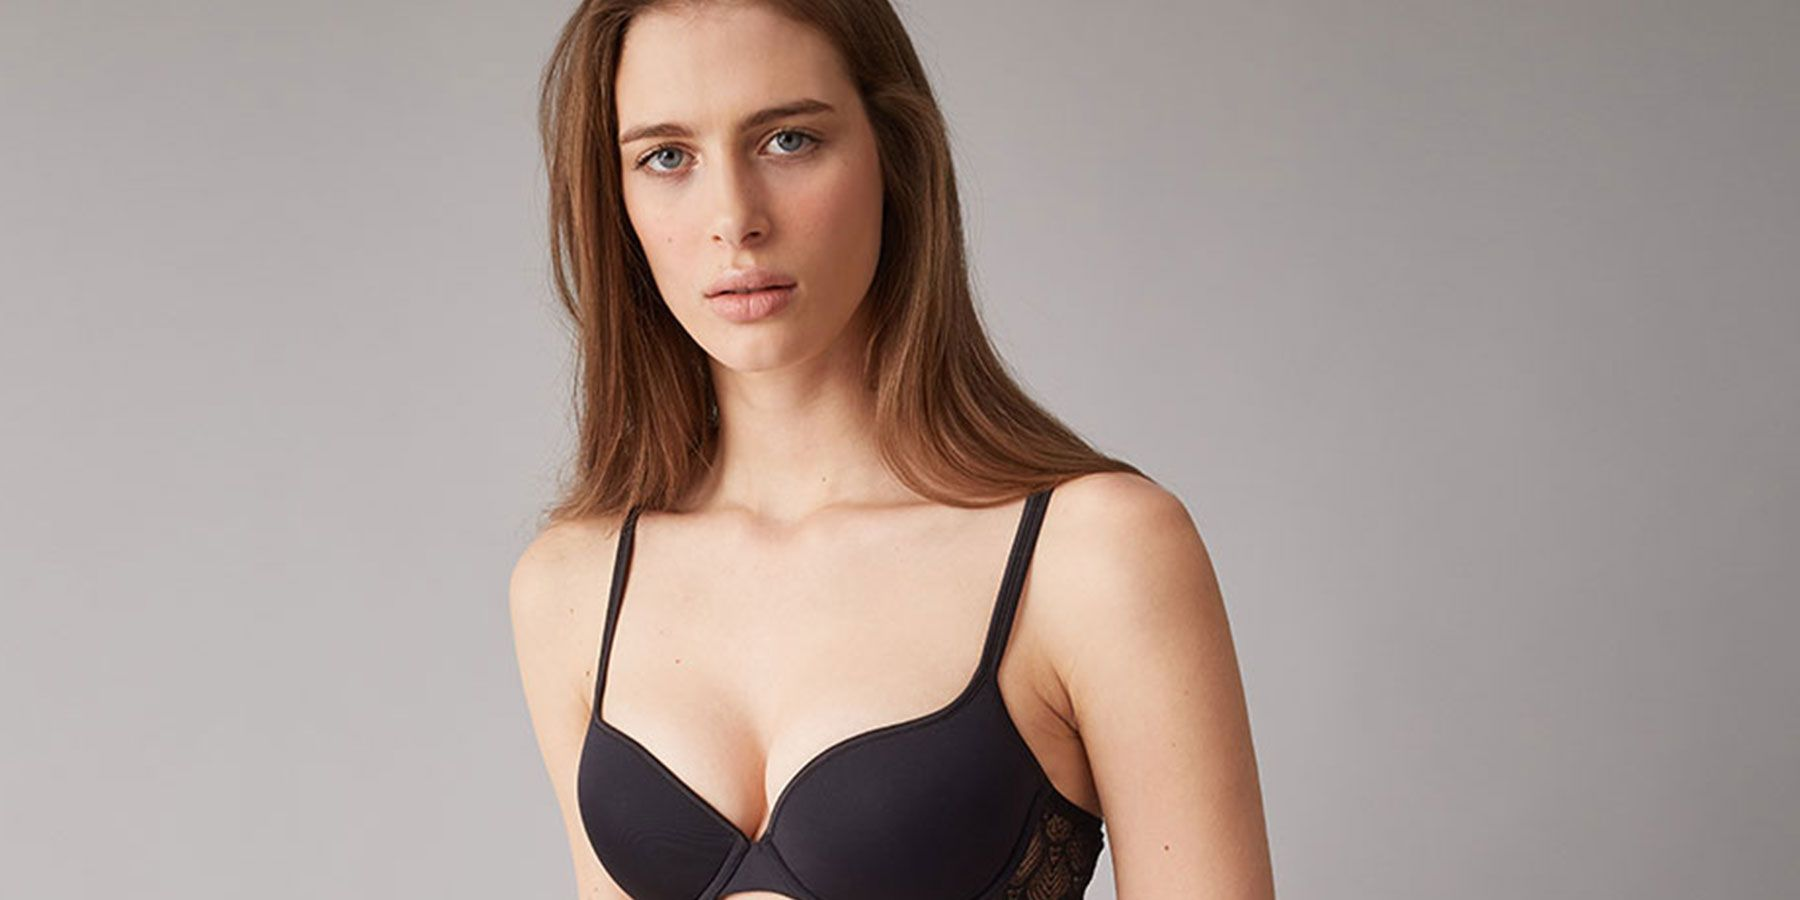 Bra fitting service